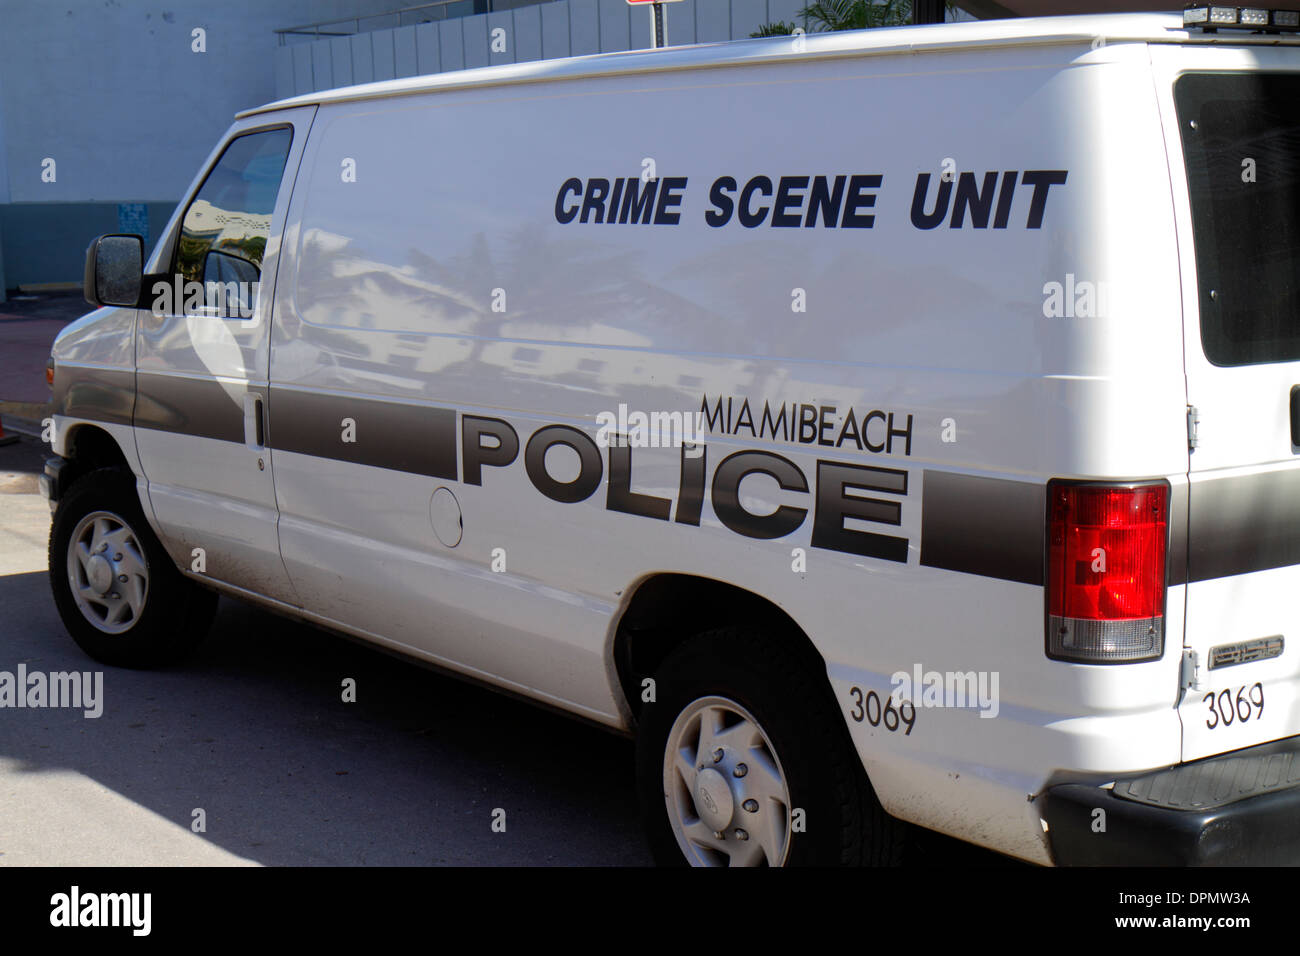 Miami Beach Florida Police Crime Scene Unit van vehicle crime - Stock Image